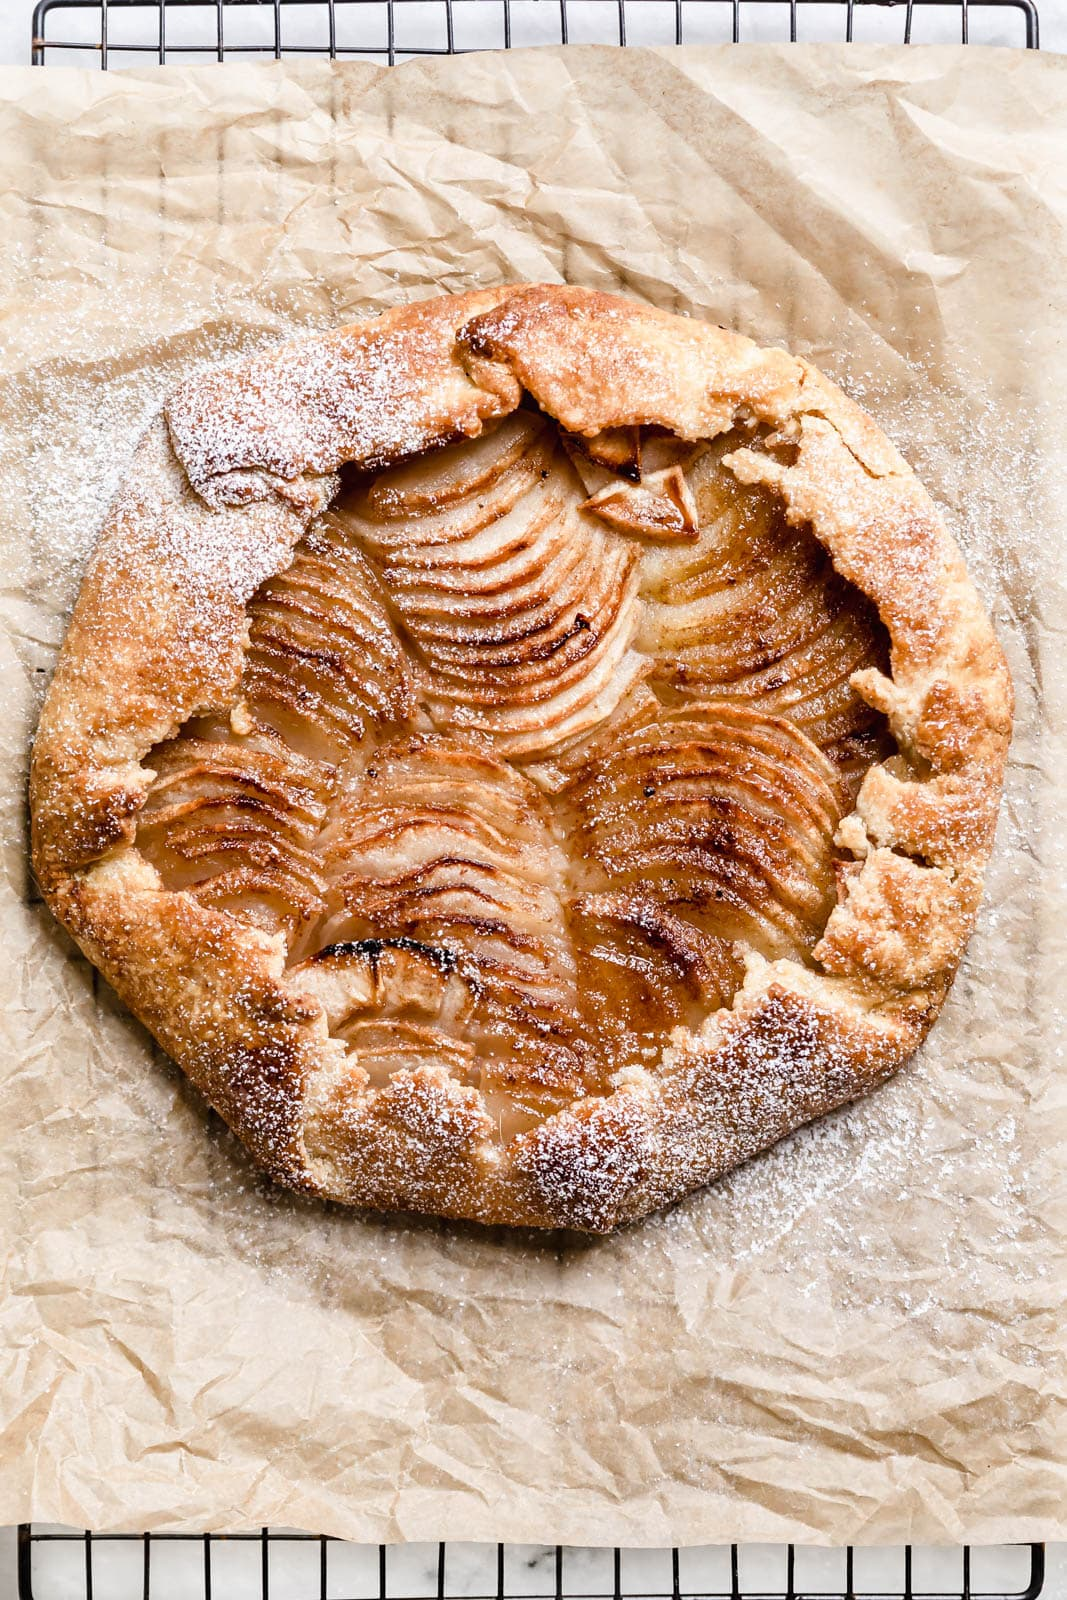 All the taste of apple pie, but half the work. This Cinnamon Apple Galette is just perfect for an easy but delicious dessert.